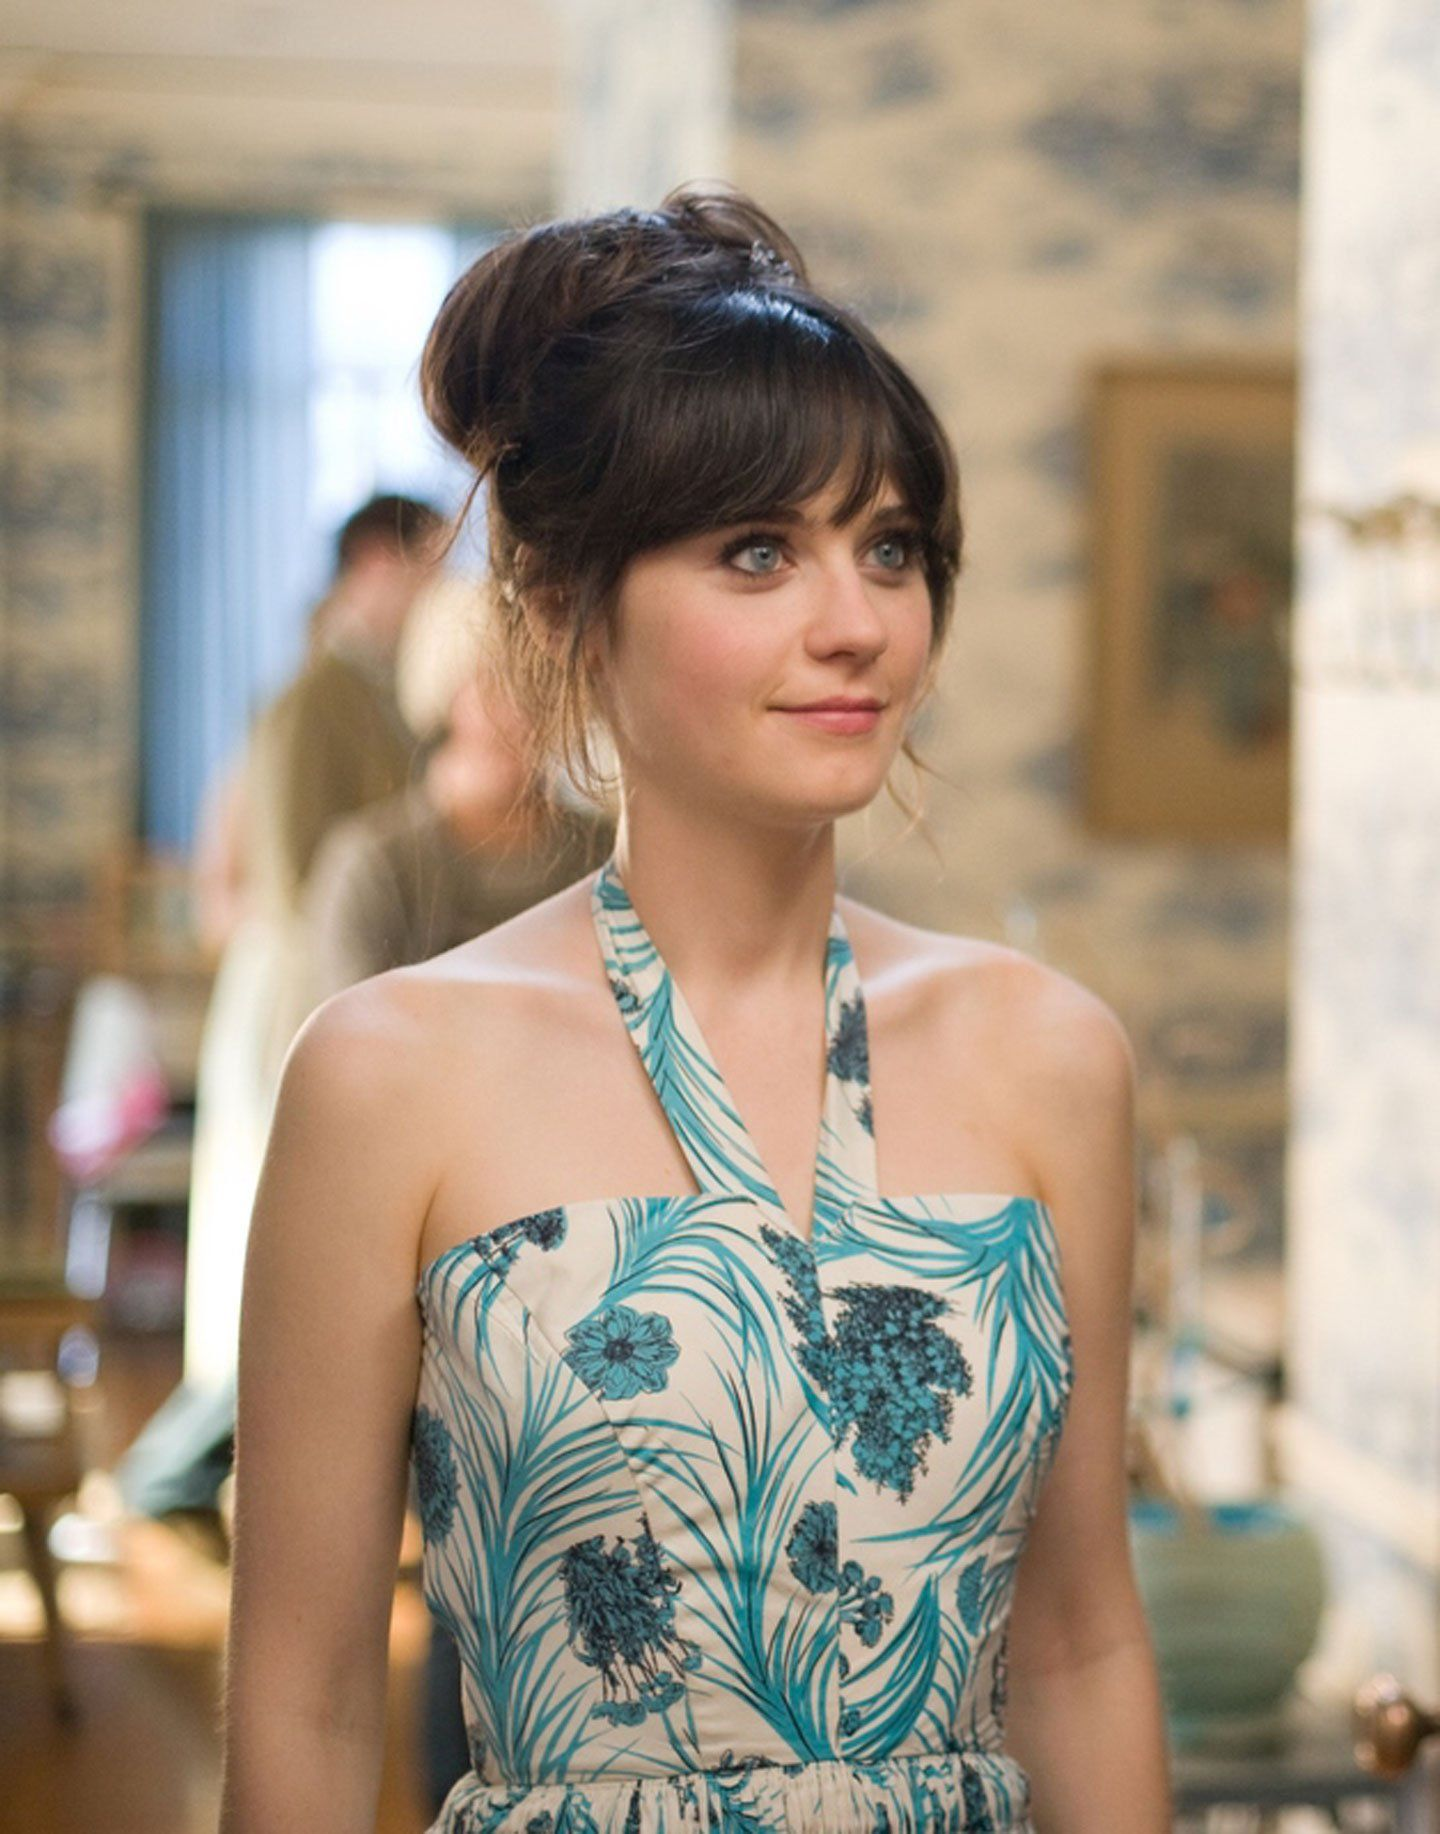 500 days of summer wedding dress pattern